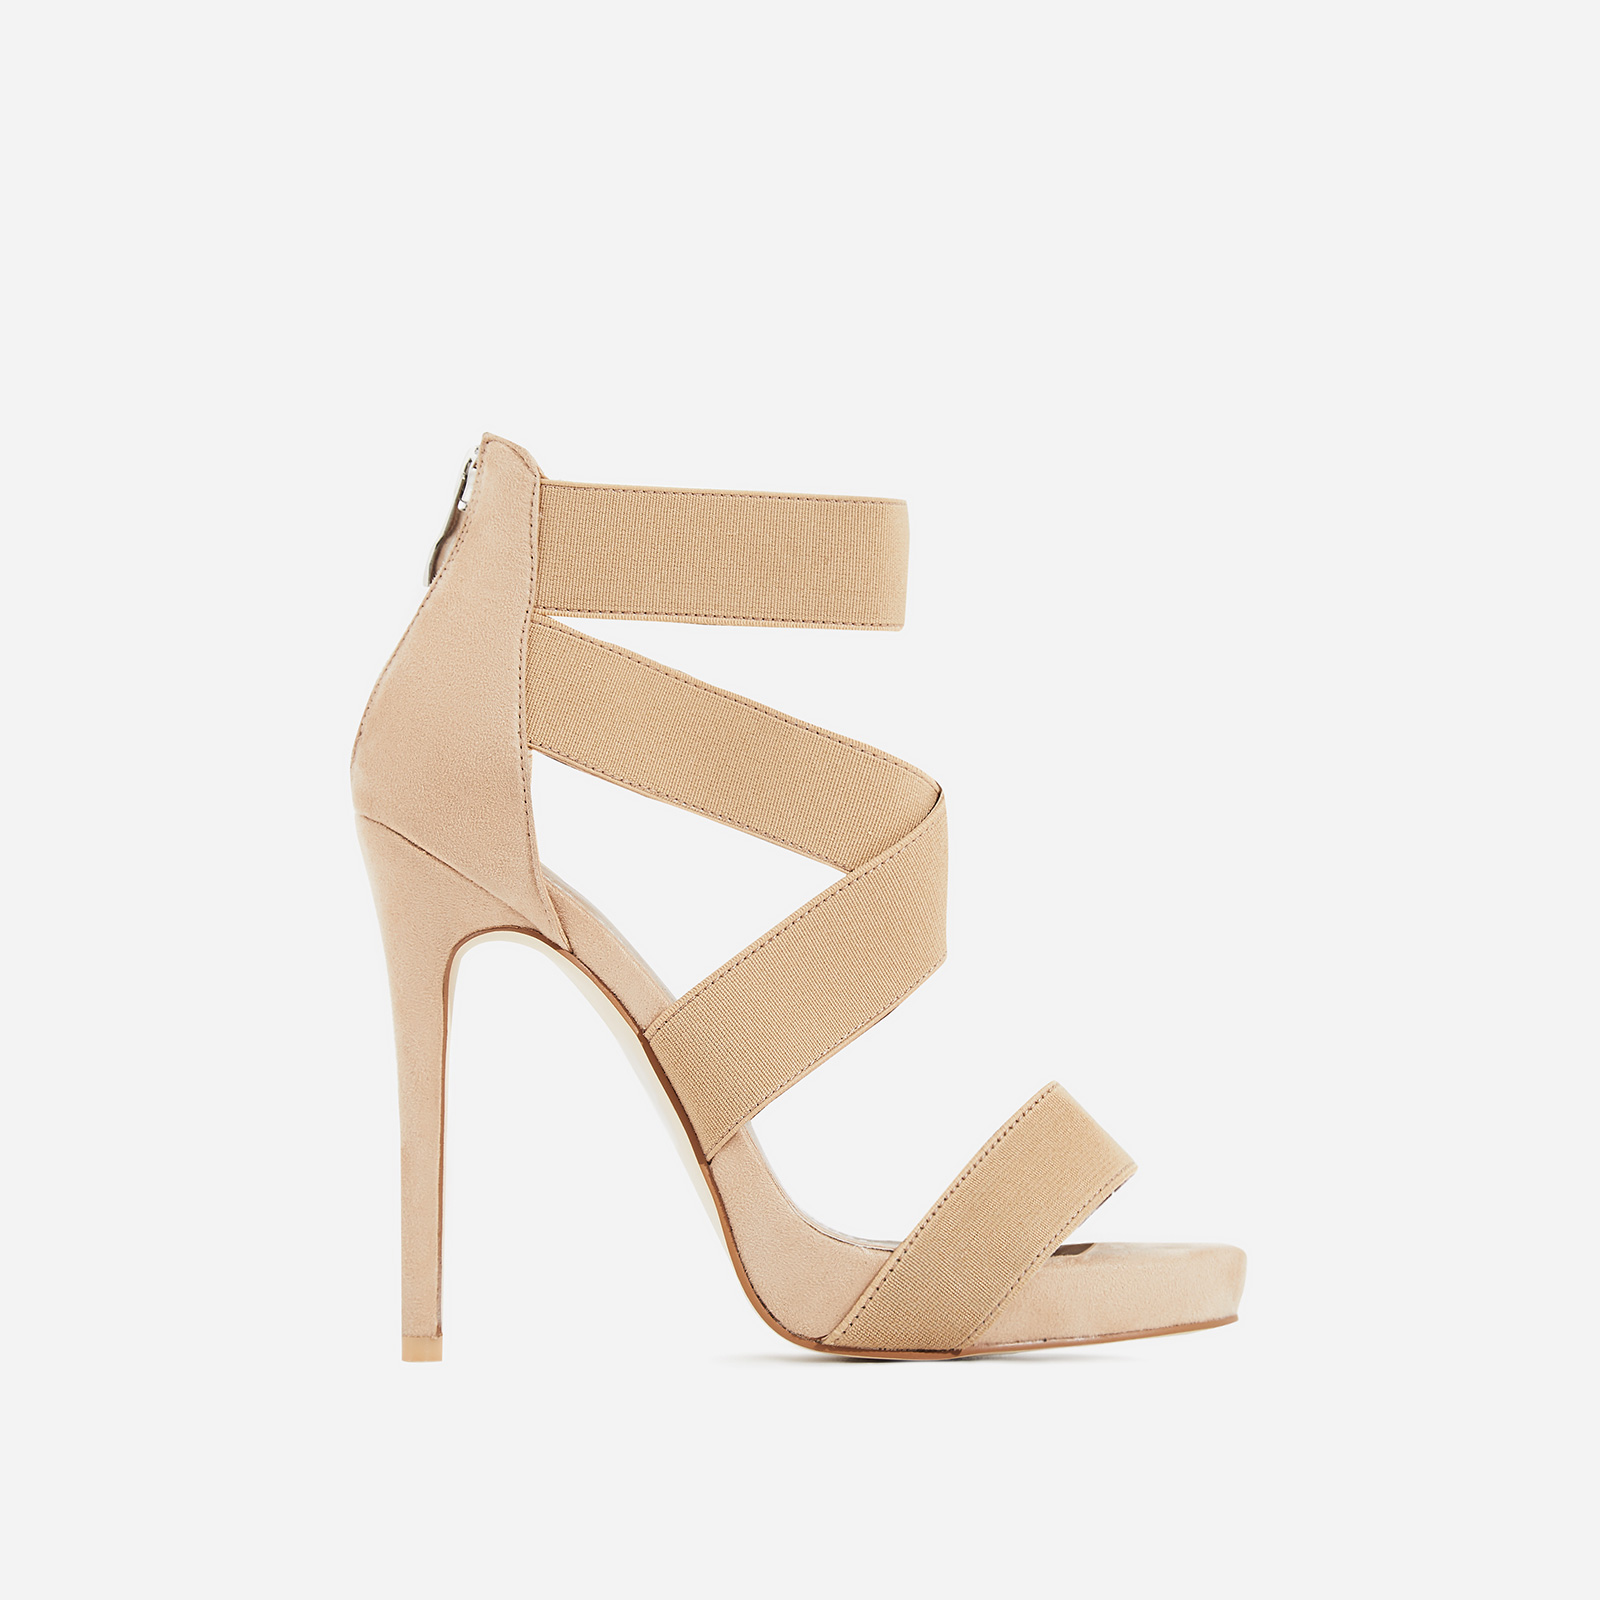 Skylar Elastic Cross Over Heel In Nude Faux Suede